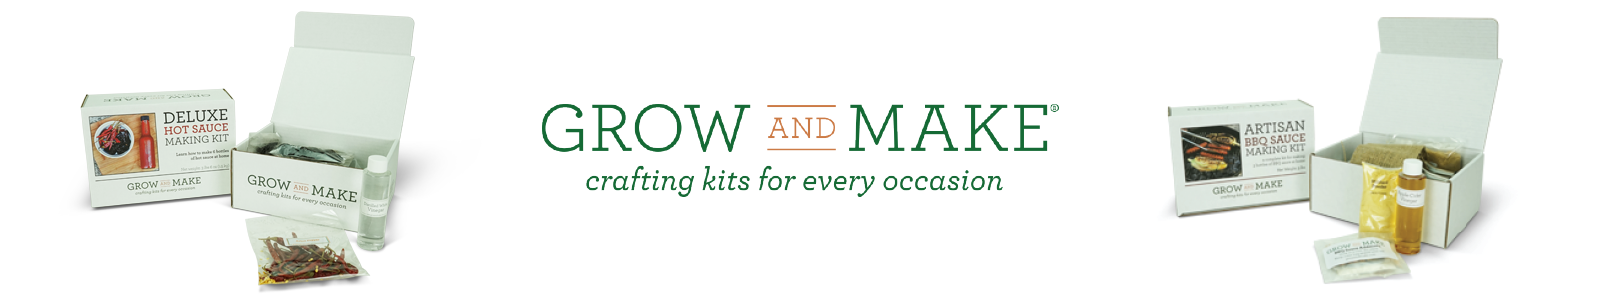 Grow and Make Case Study Download The BoxMaker